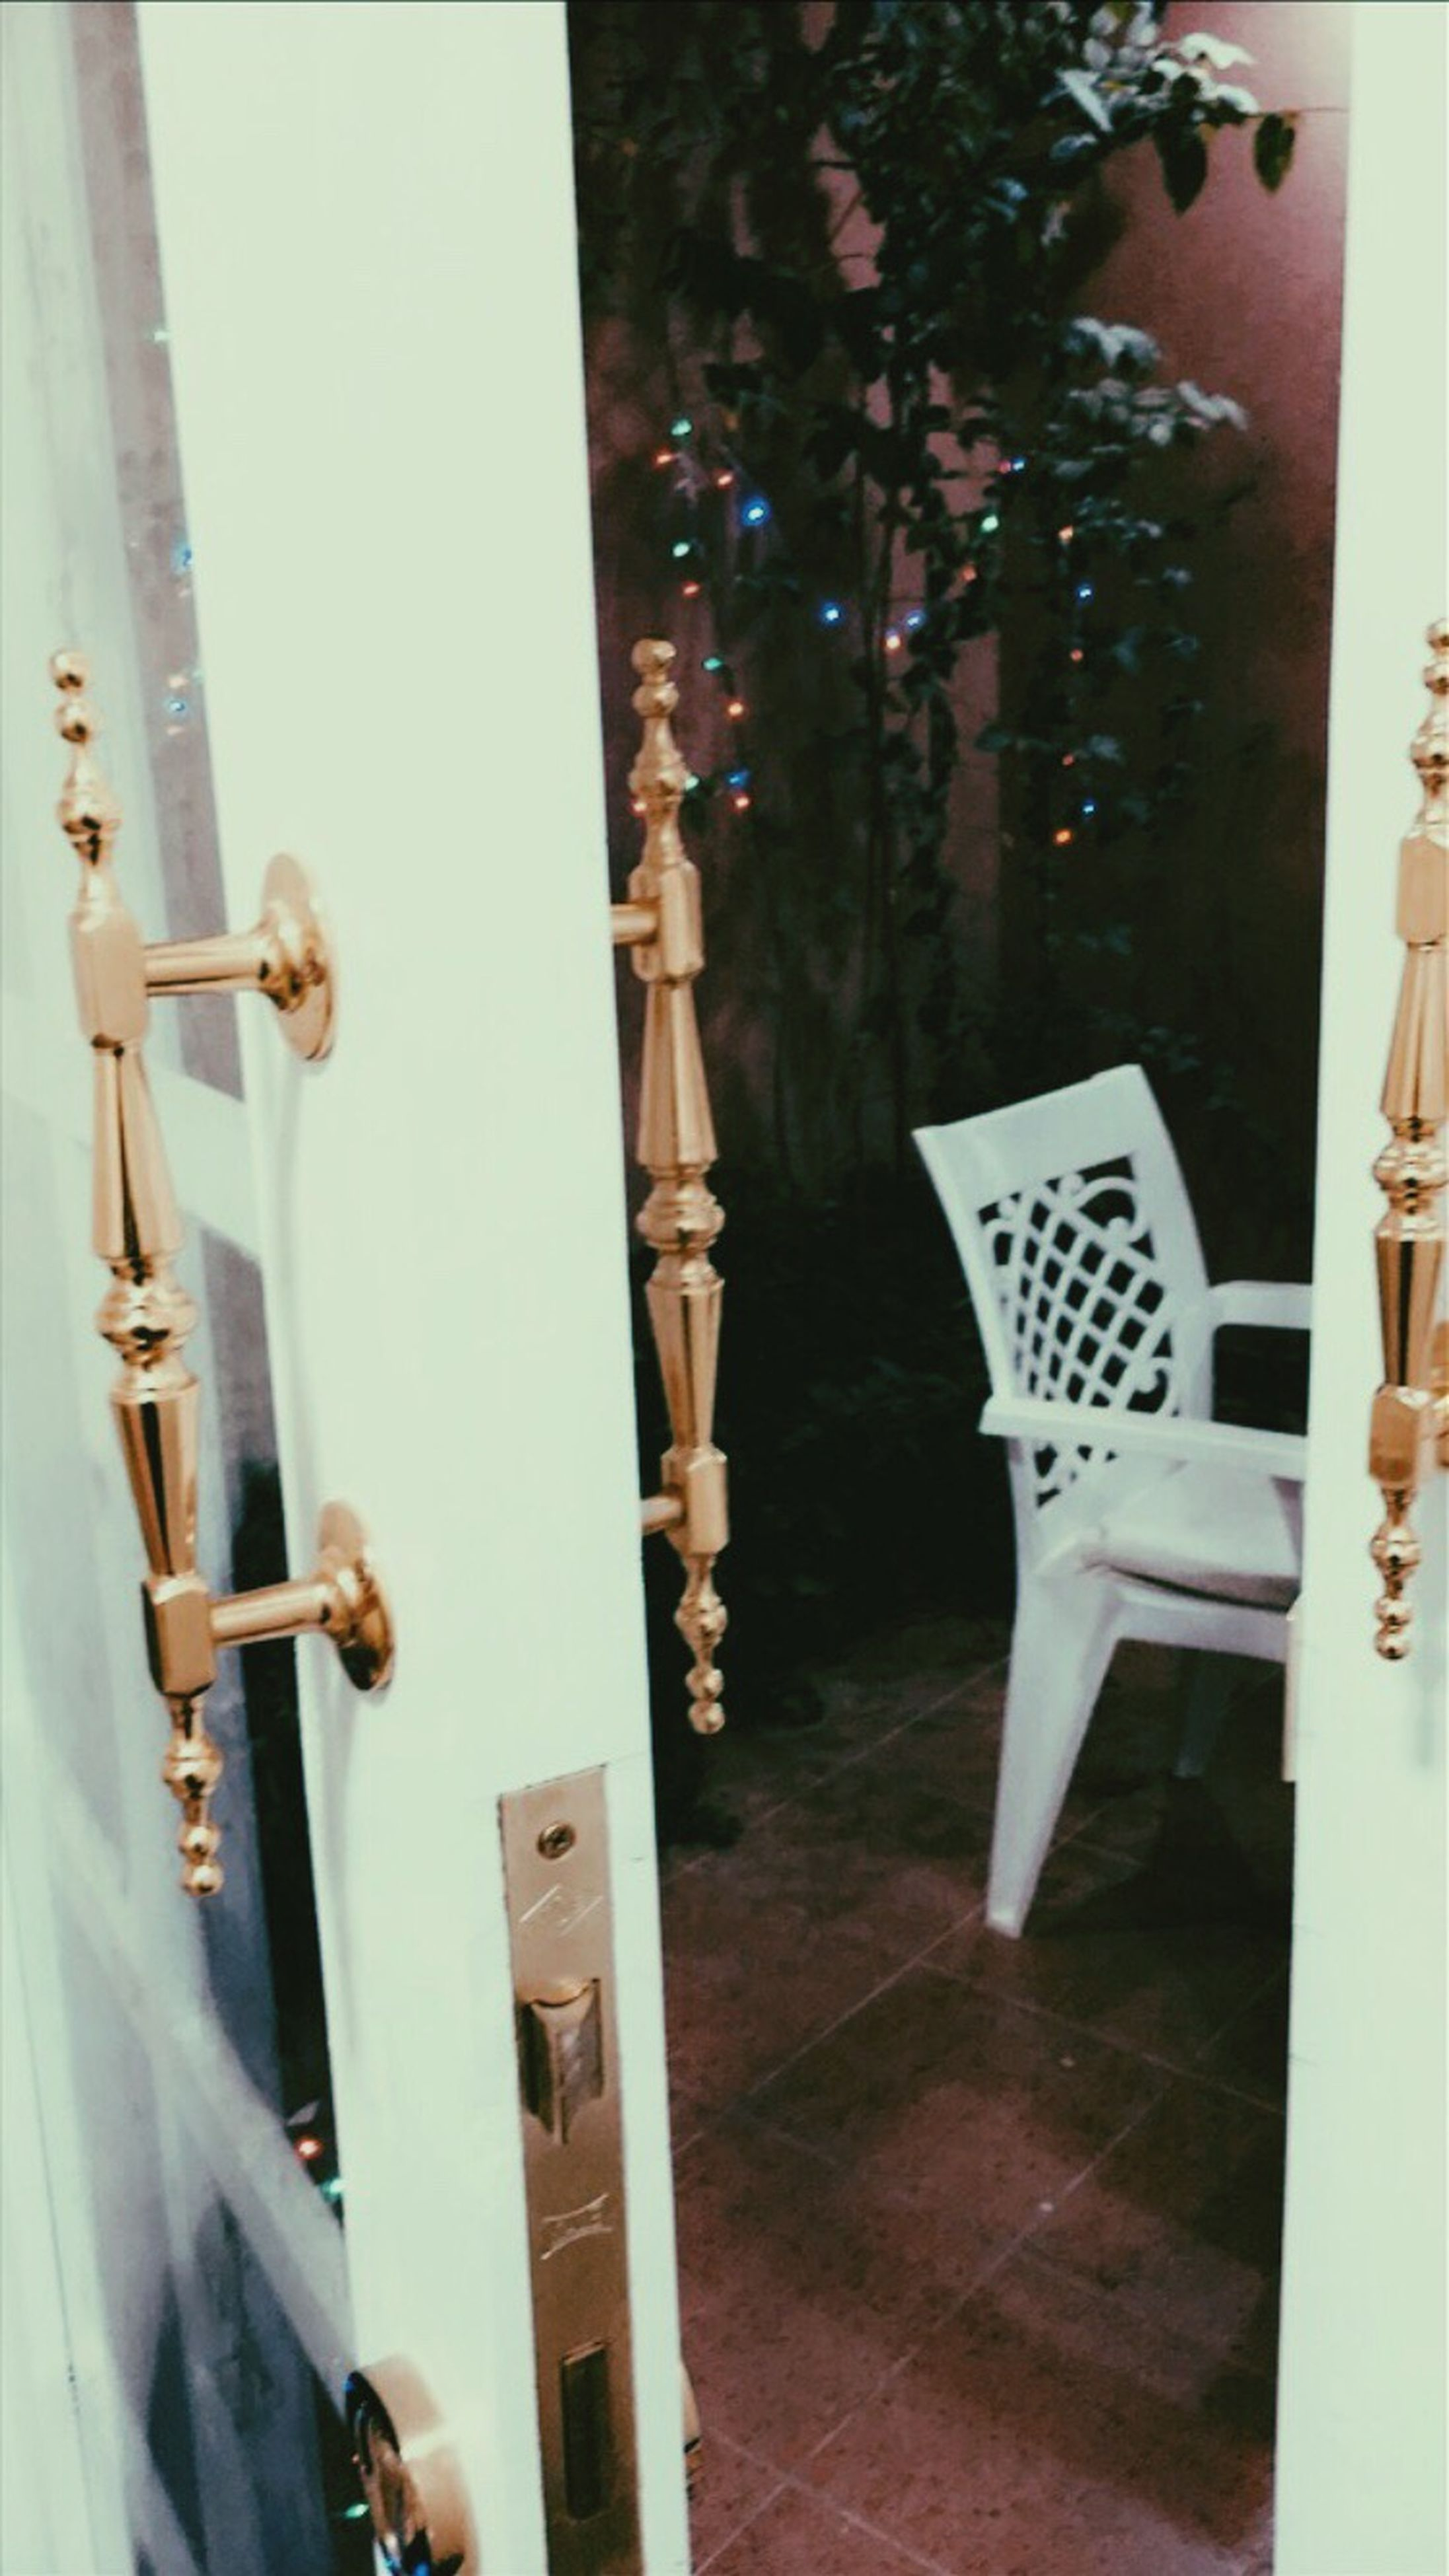 chair, no people, rocking chair, indoors, home interior, day